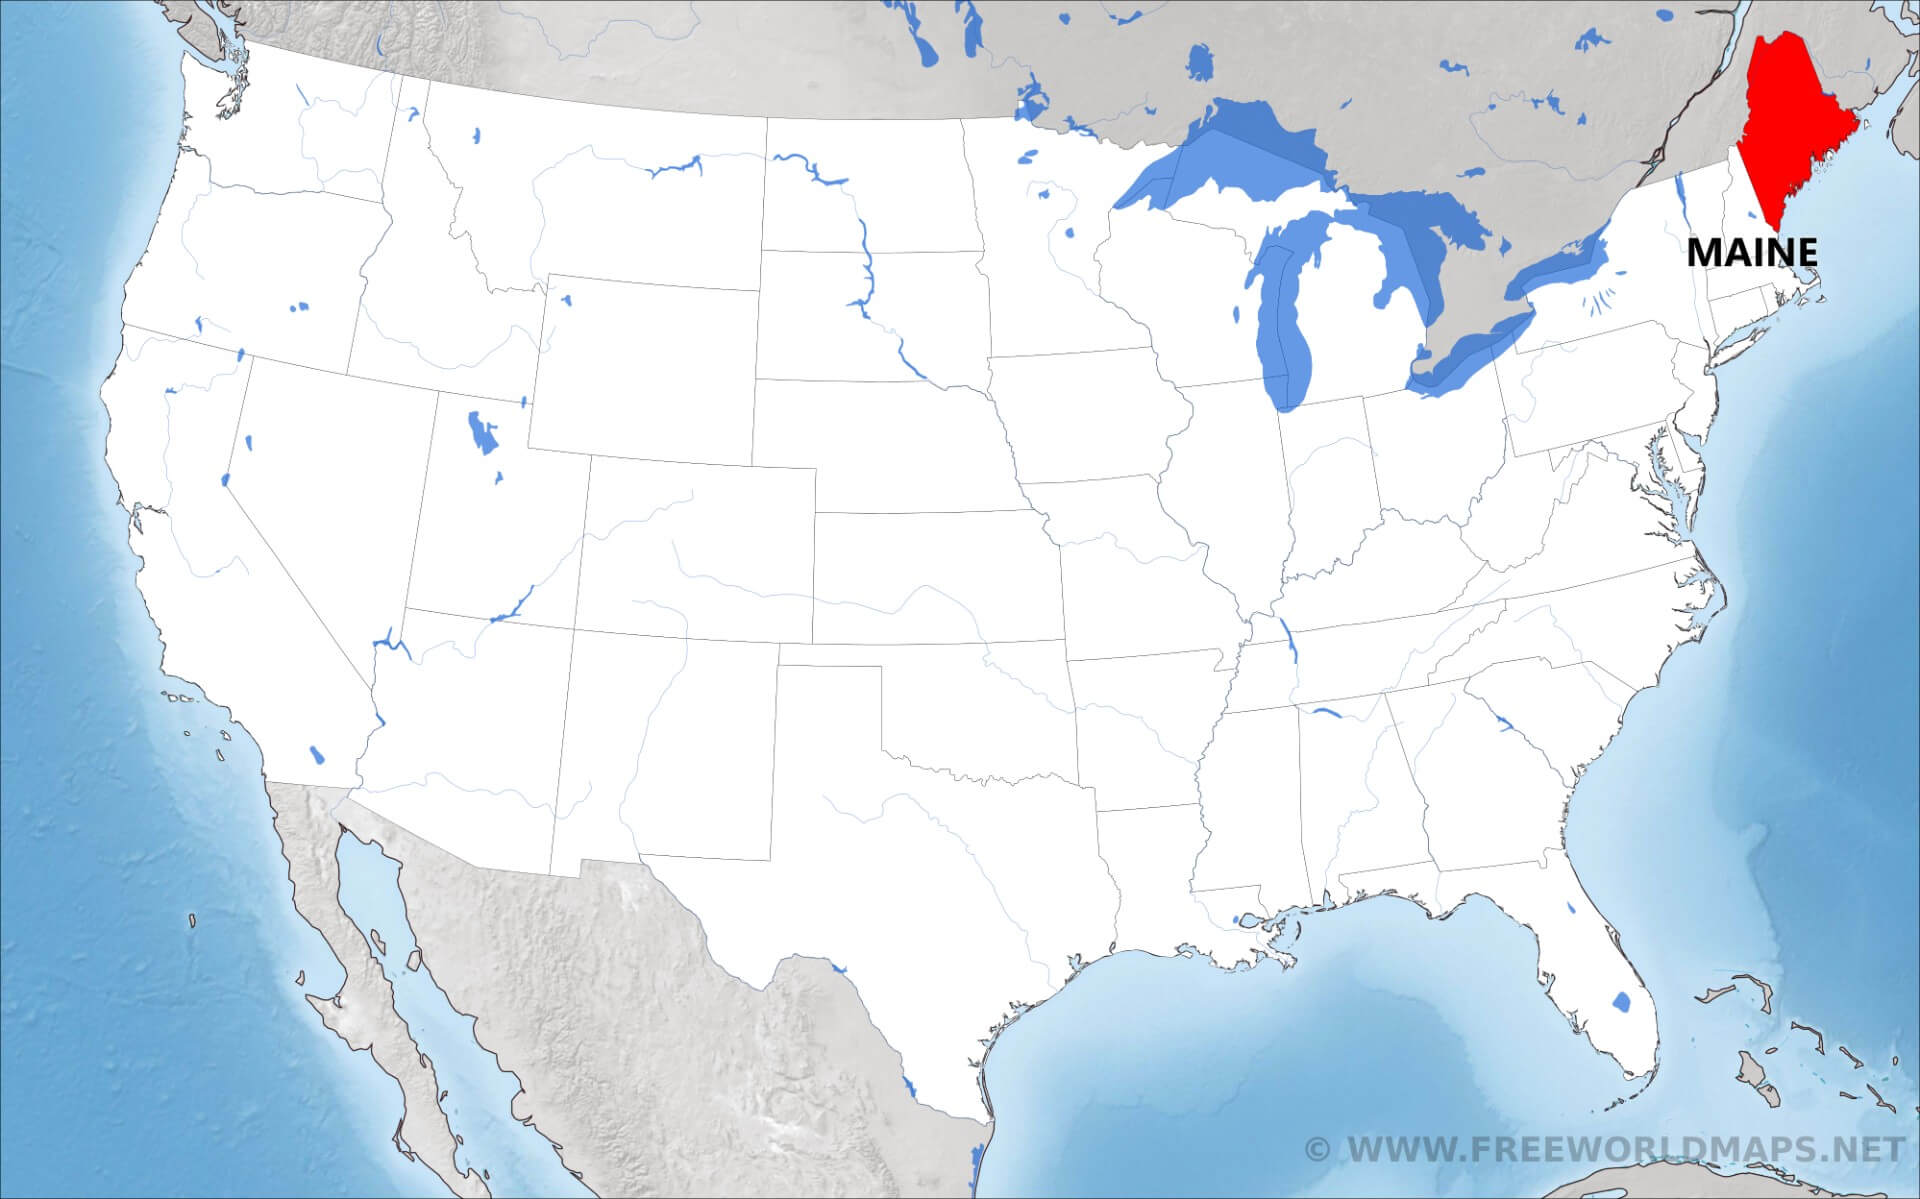 Where is Maine located on the map